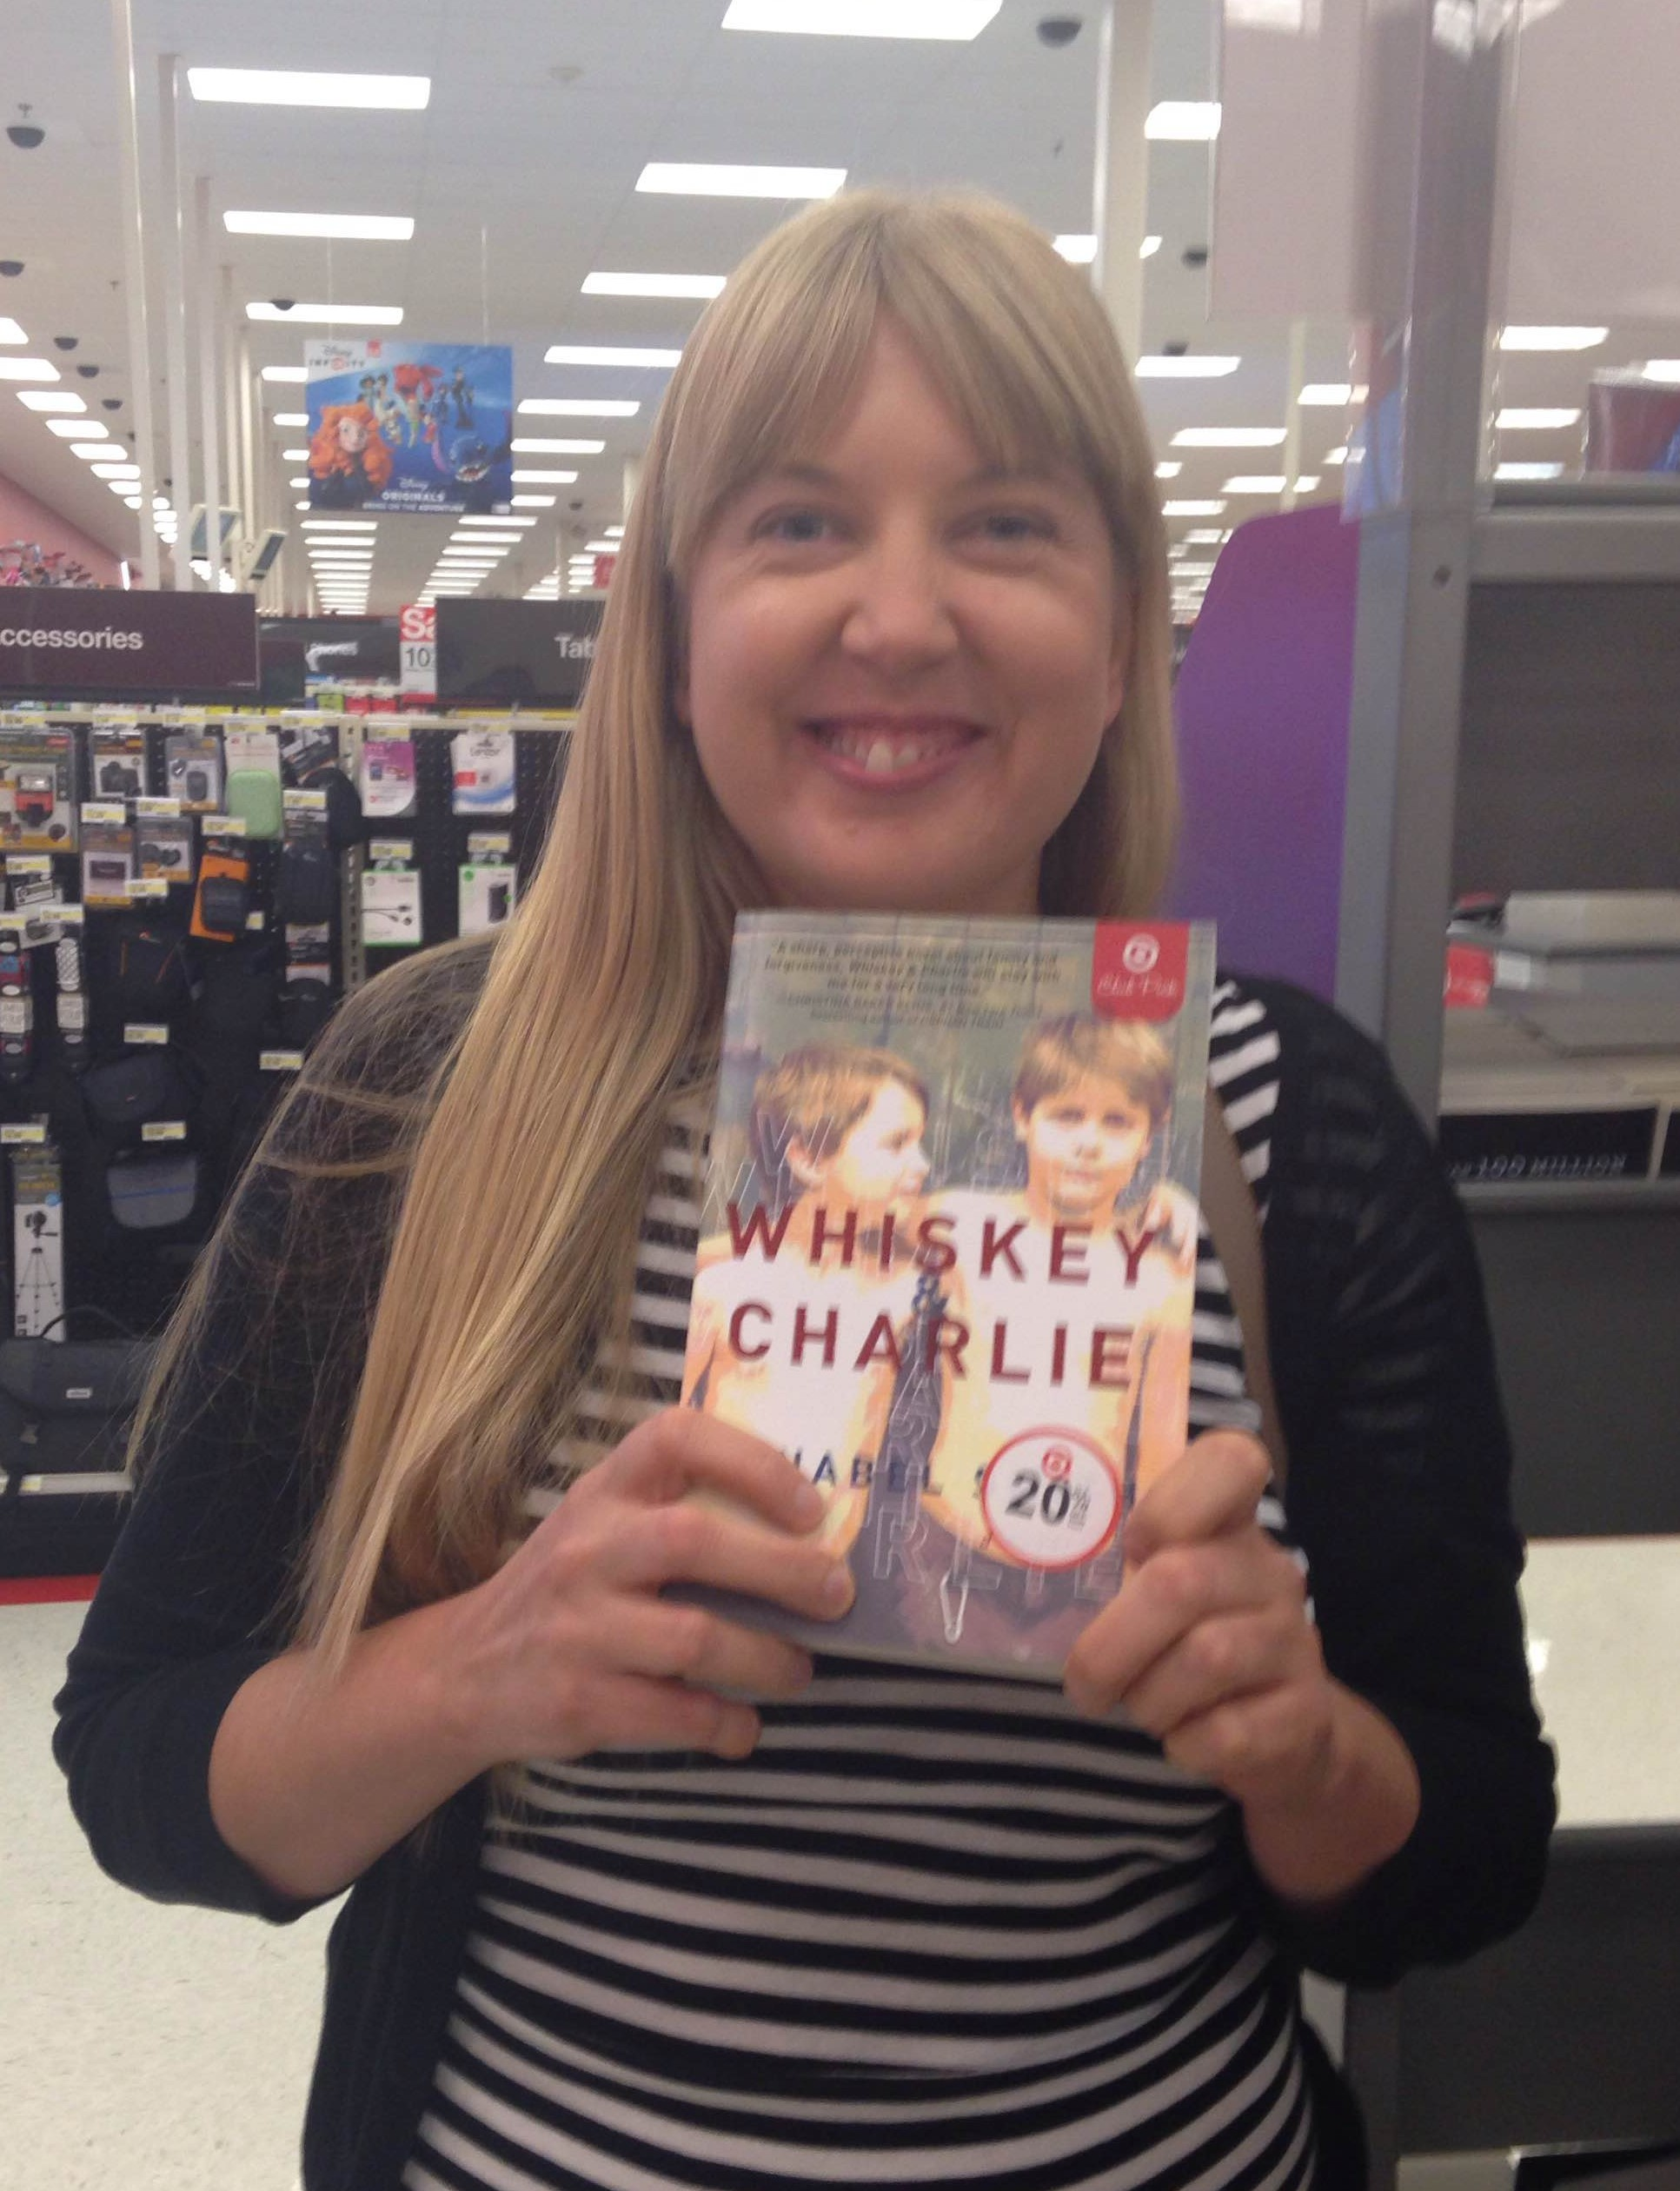 Whiskey & Charlie: Journey to a Book - US 'Micro-Tour'